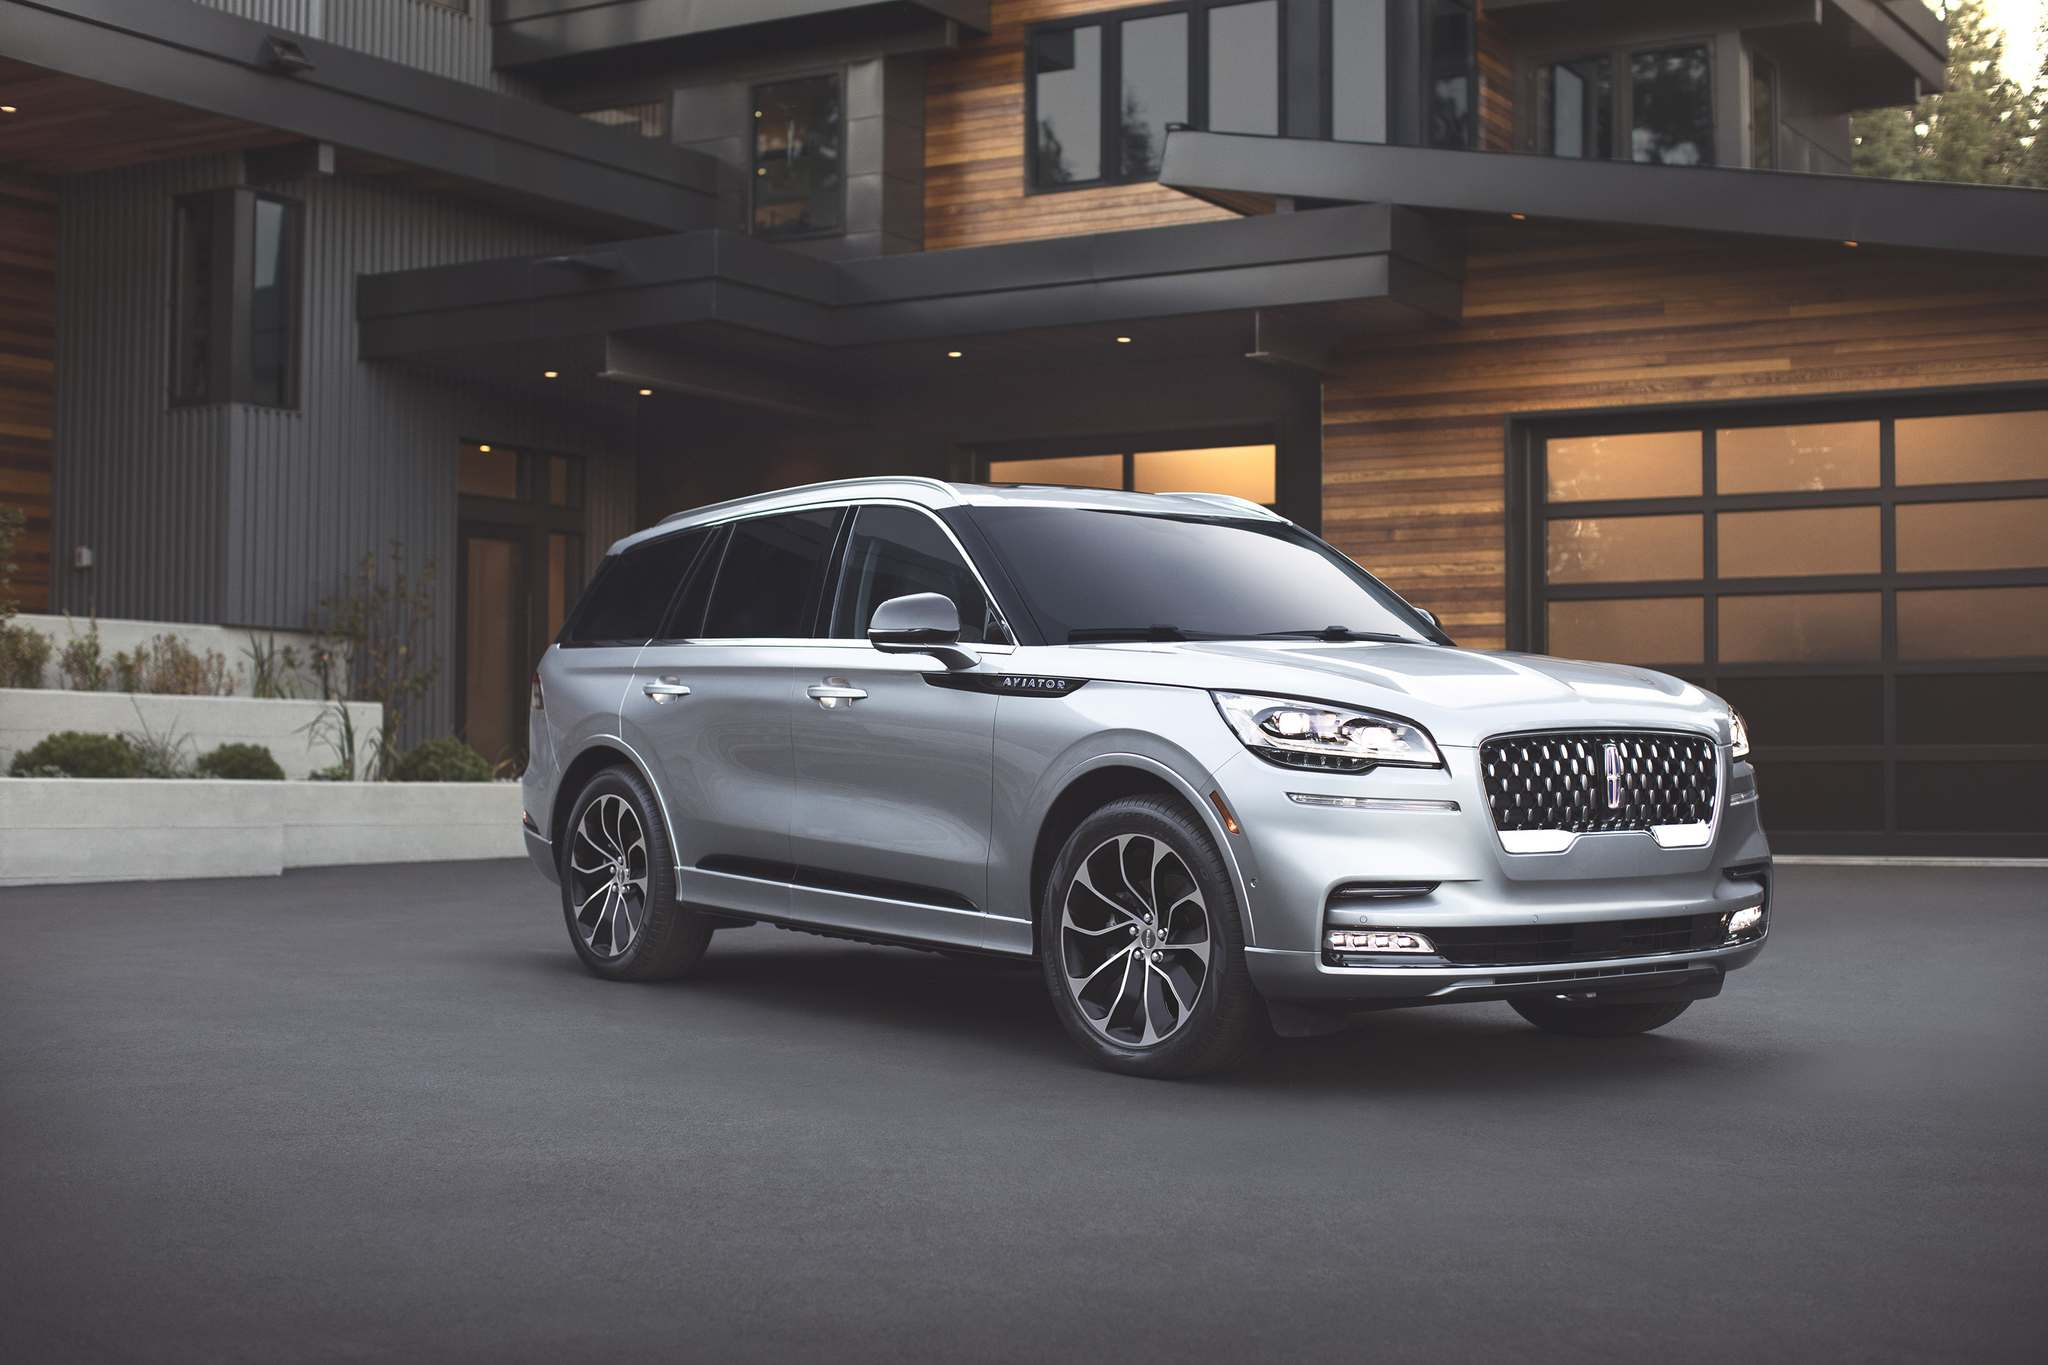 Lincoln Motor CompanyThe 2020 Lincoln Aviator, unveiled ahead of the 2018 Los Angeles Auto Show, features two versions of its signature grille, a third row of seats and a plug-in hybrid variant labelled the Aviator Grand Touring.